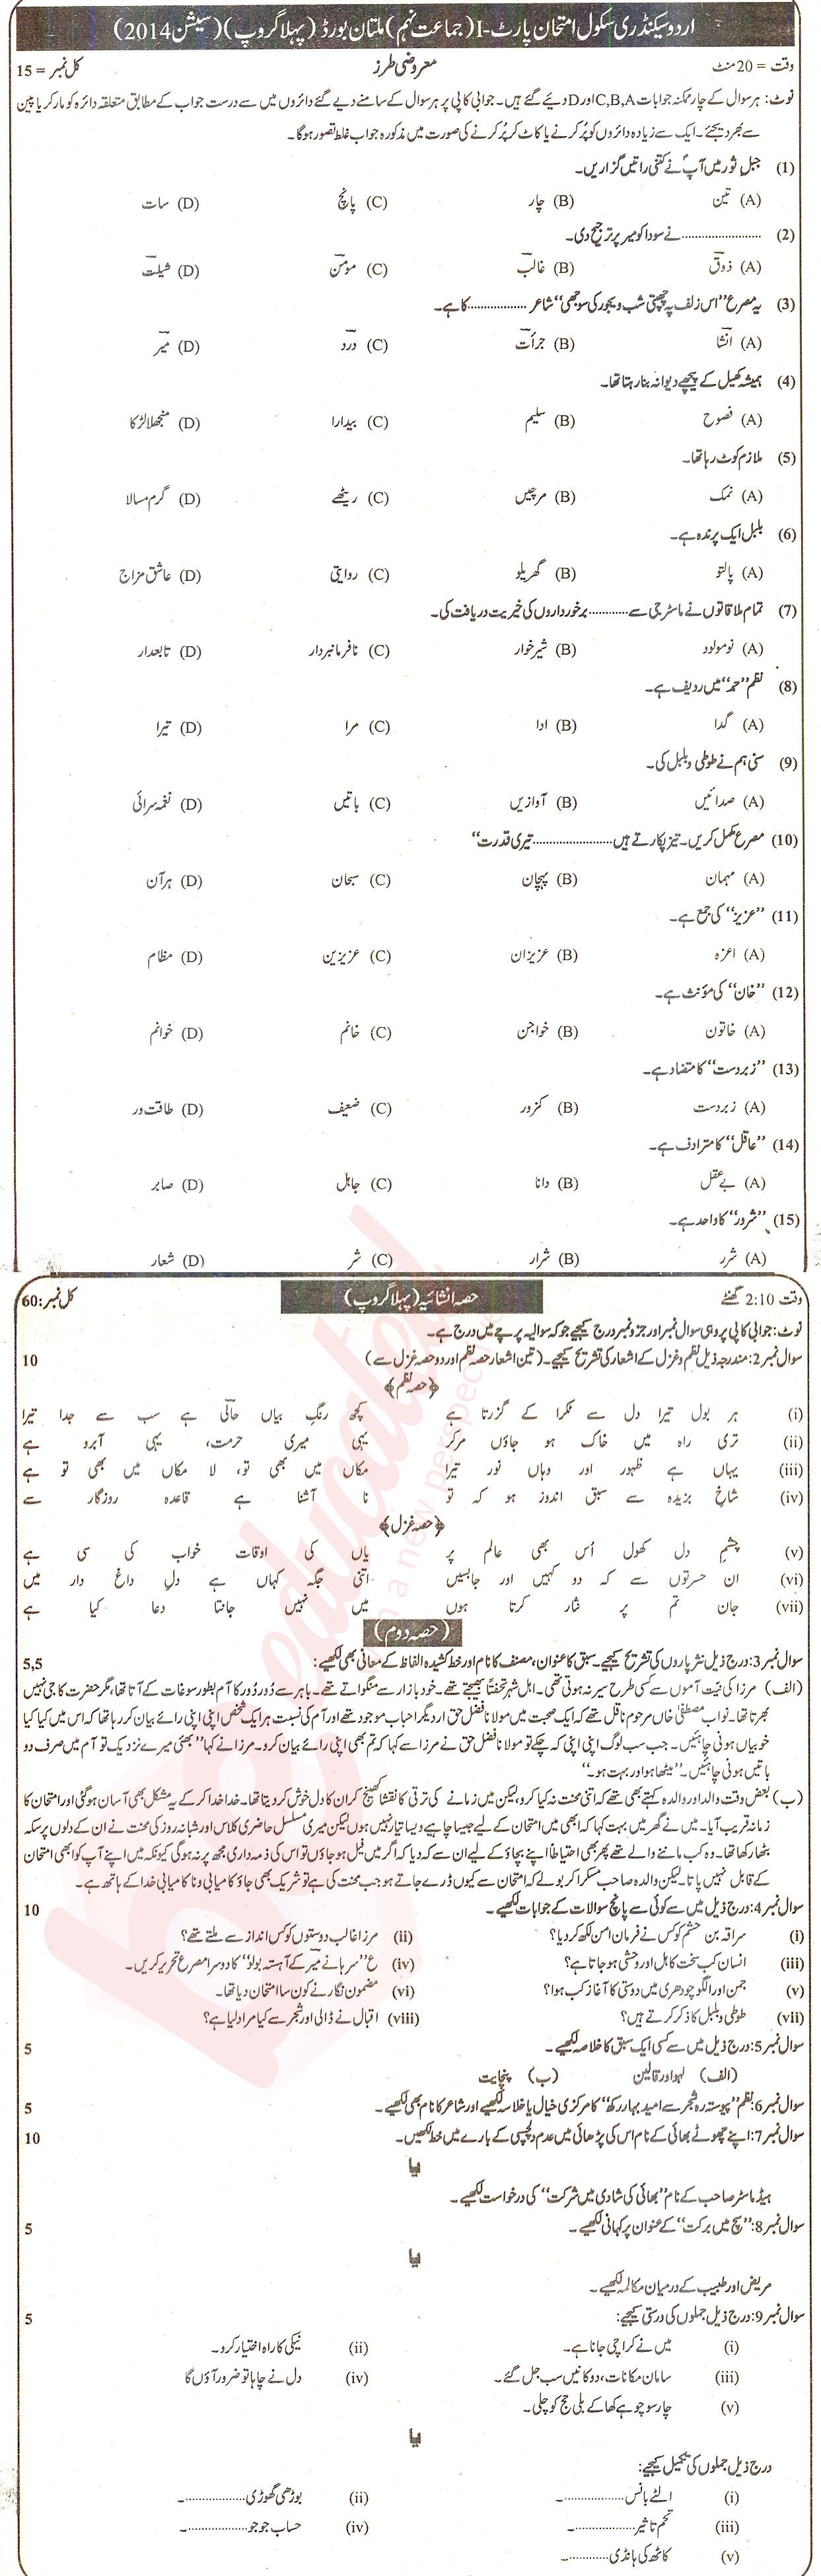 urdu papers Urdu news papers hindi news papers arabic news papers french news papers englisk news papers chinies news papers farsi news papers etc etc.